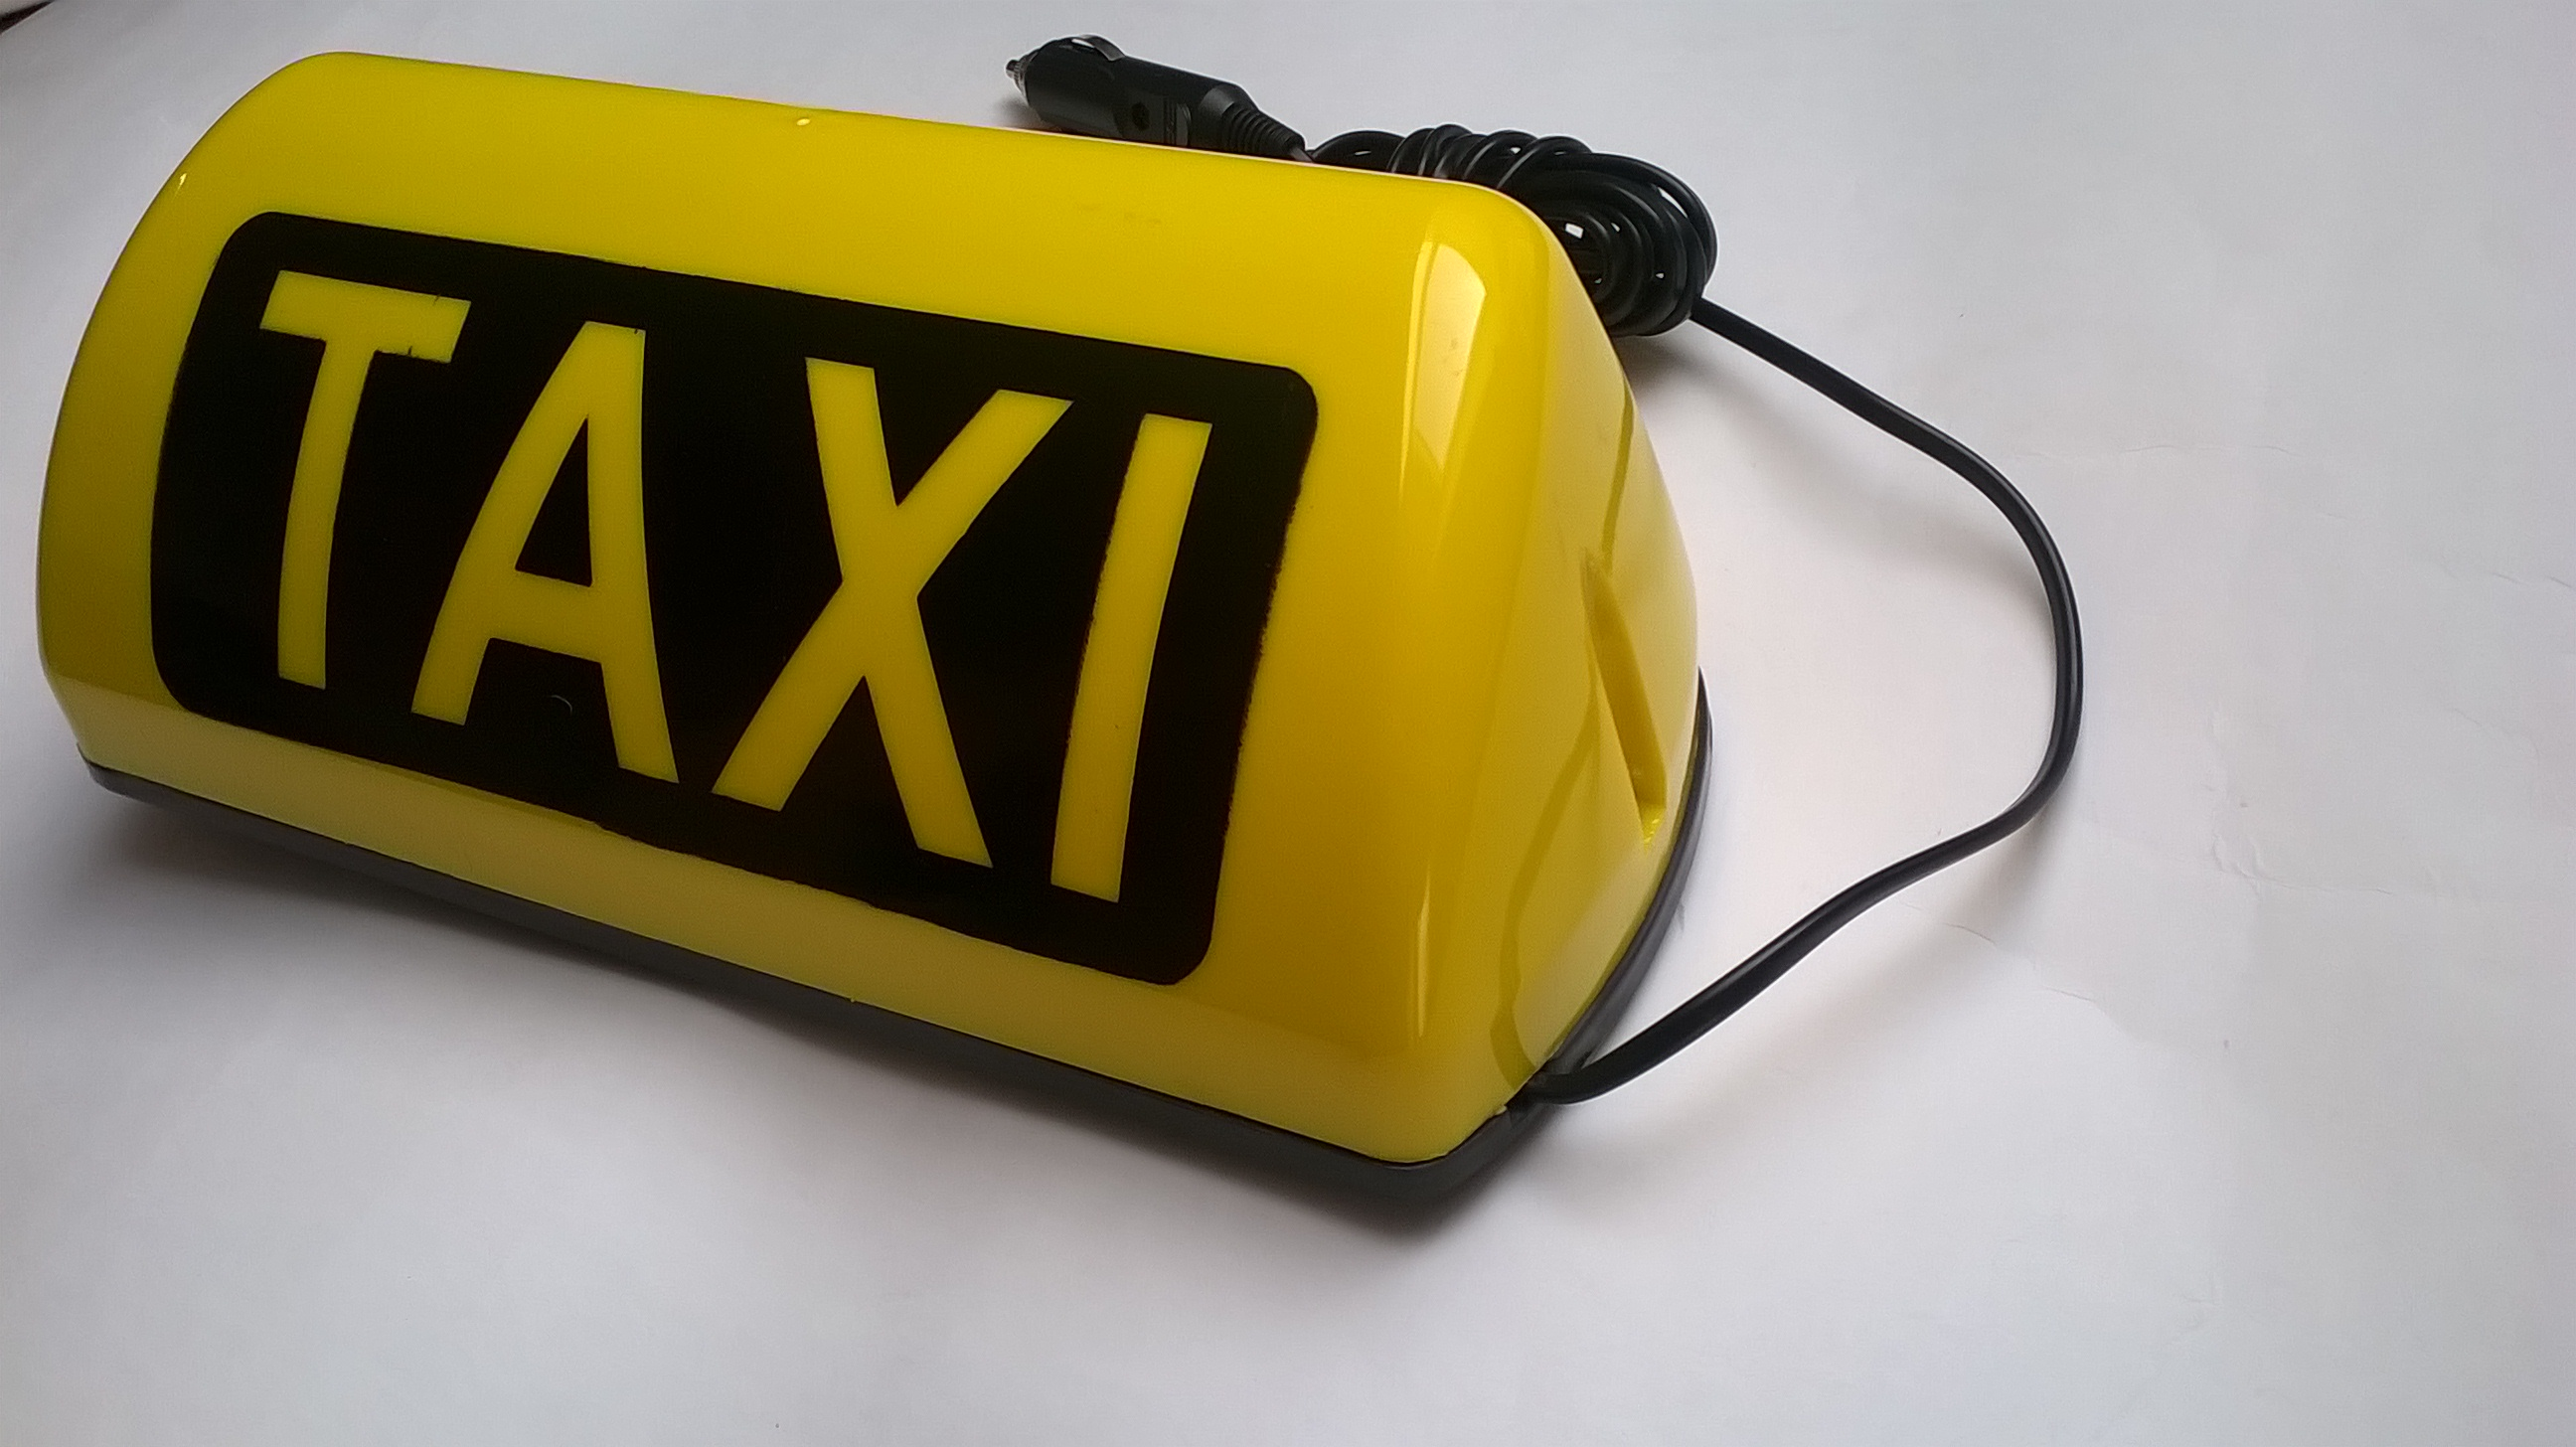 Taxi transparent city 12V